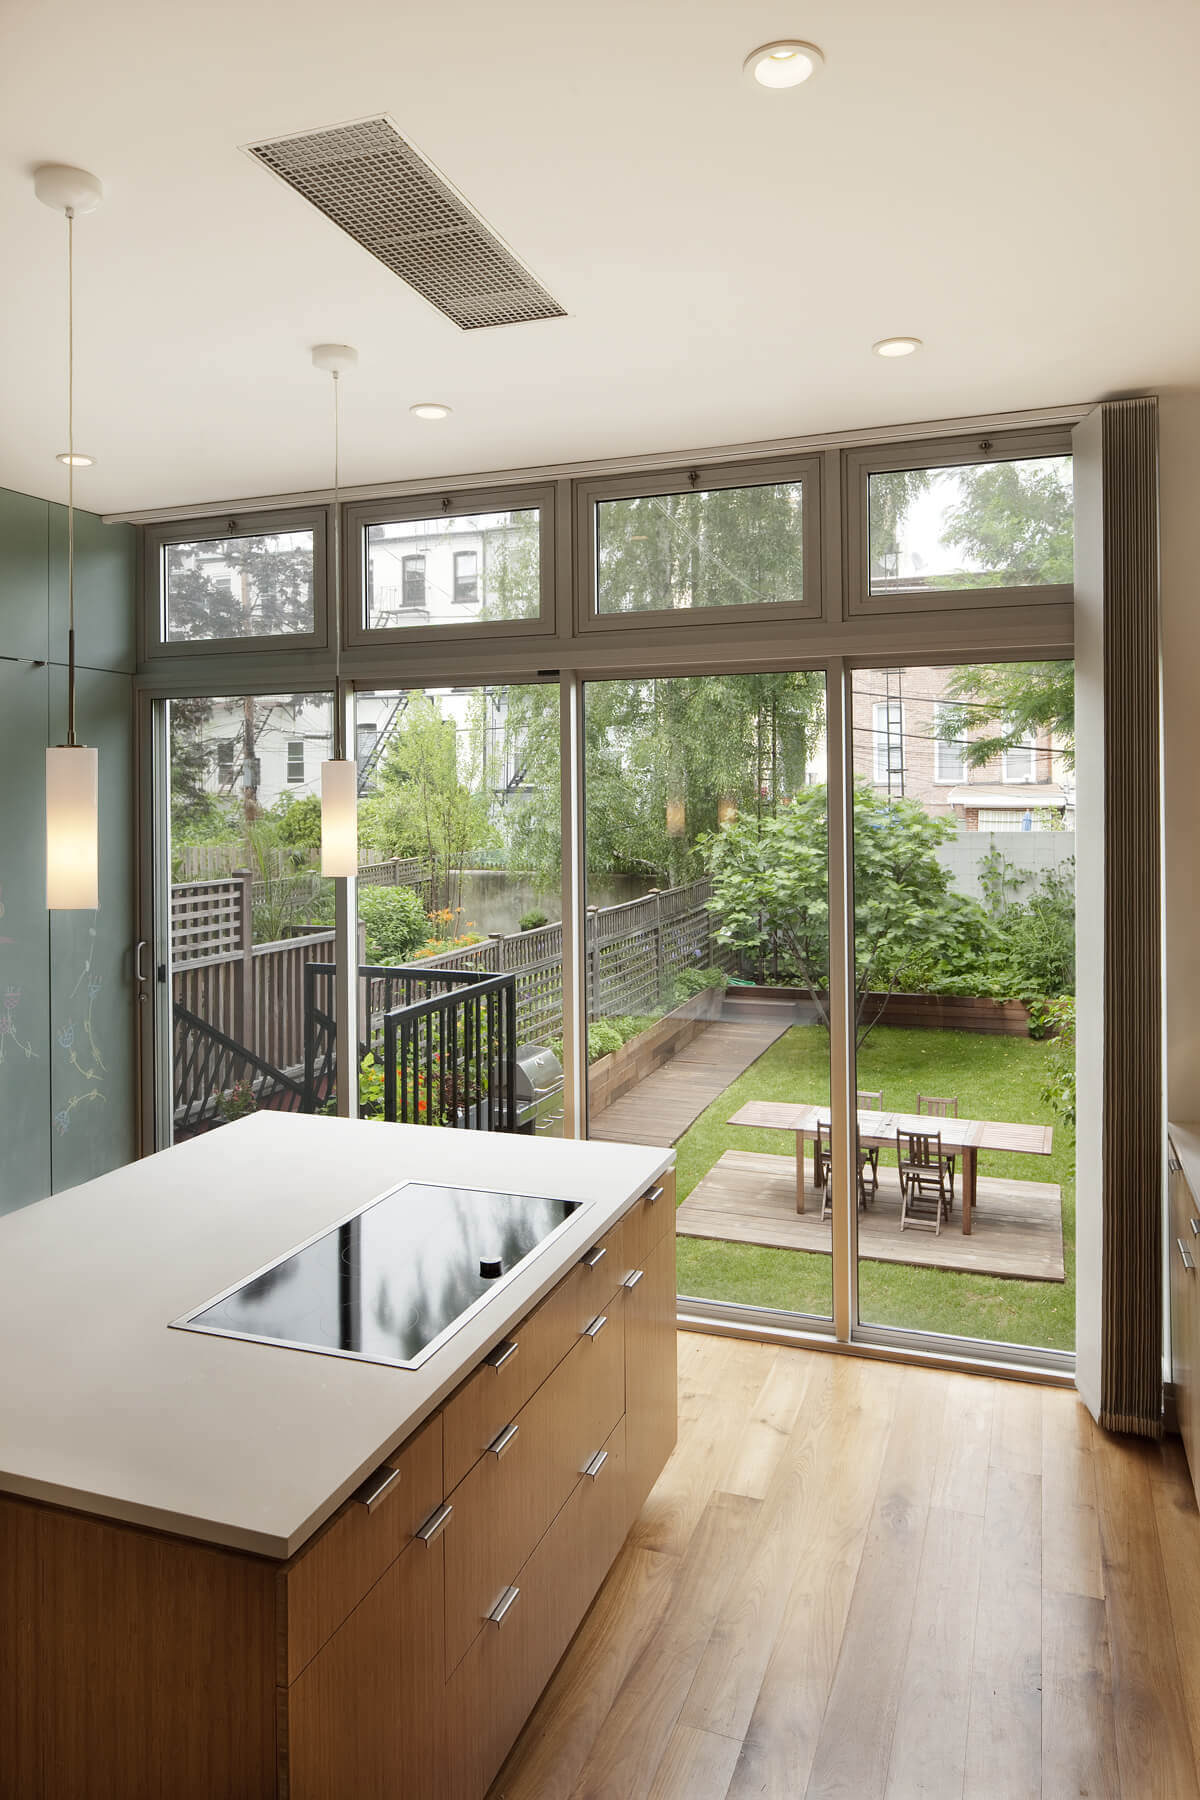 sustainable design strategies include a rear wall of glass